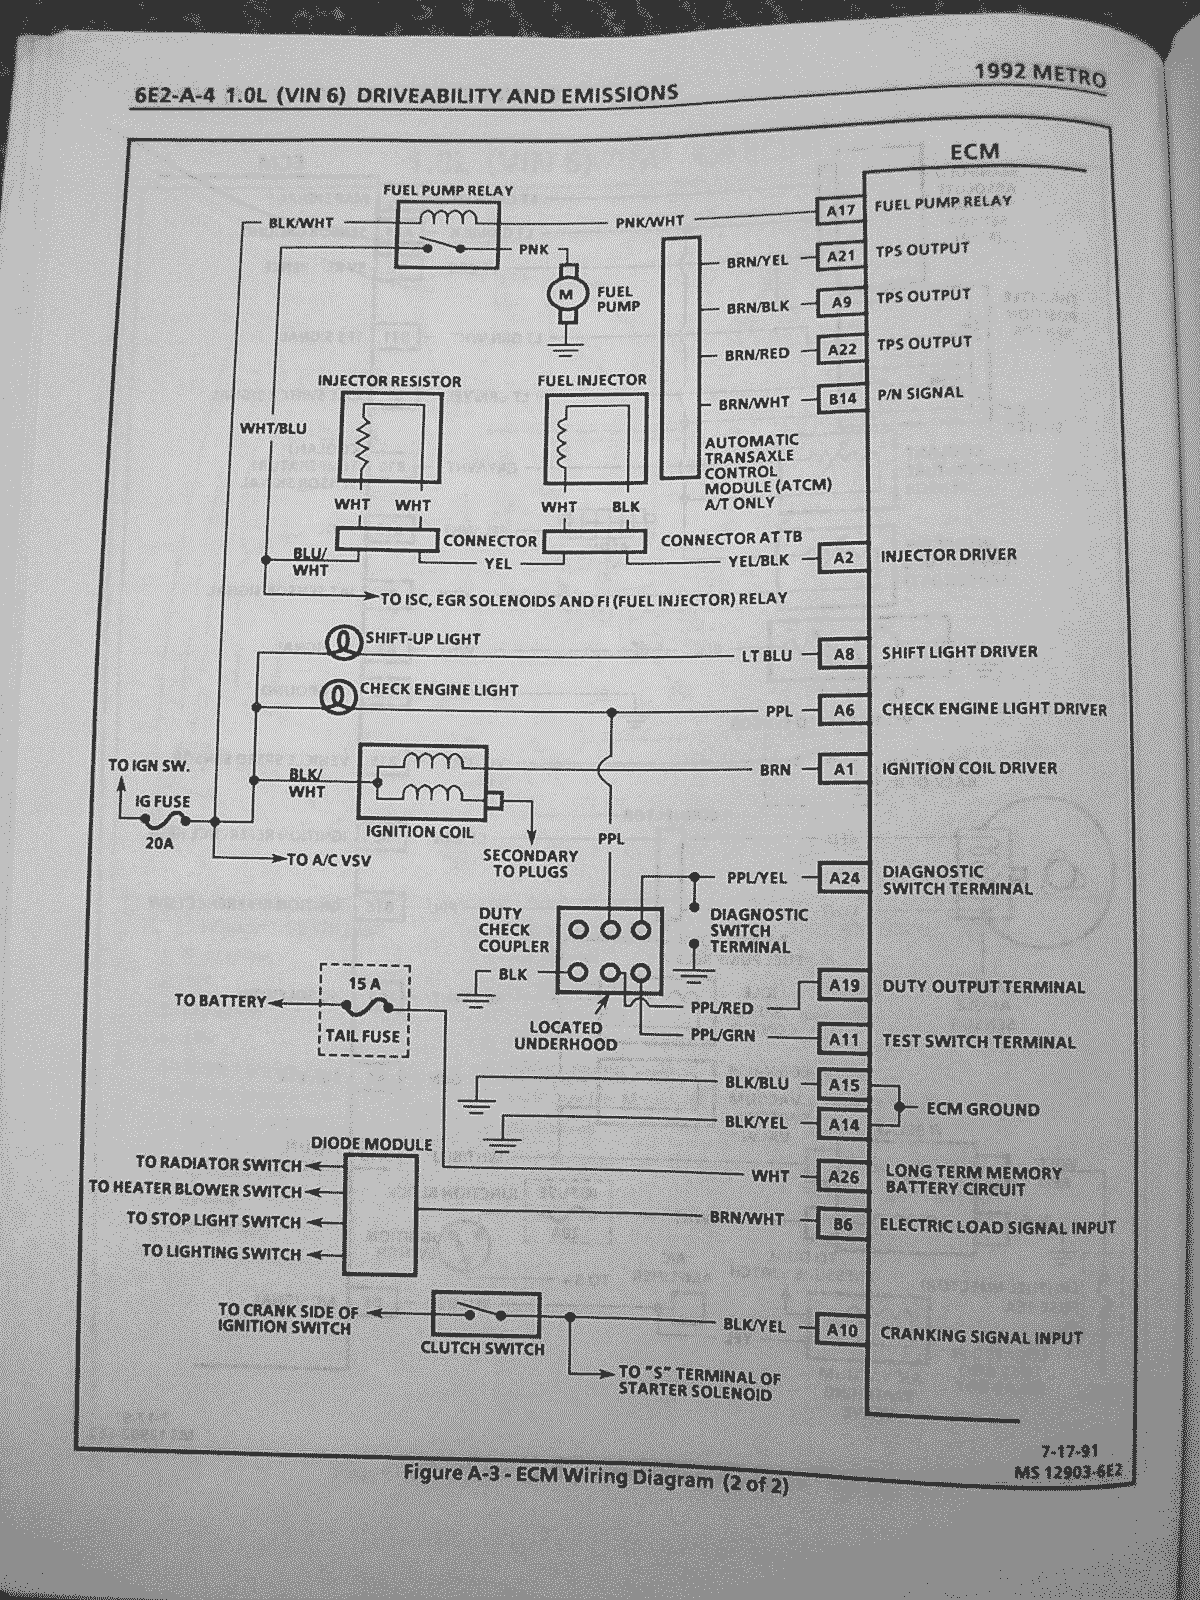 6e2 a 4 geo metro and suzuki swift wiring diagrams metroxfi com 97 geo metro radio wiring diagram at bakdesigns.co